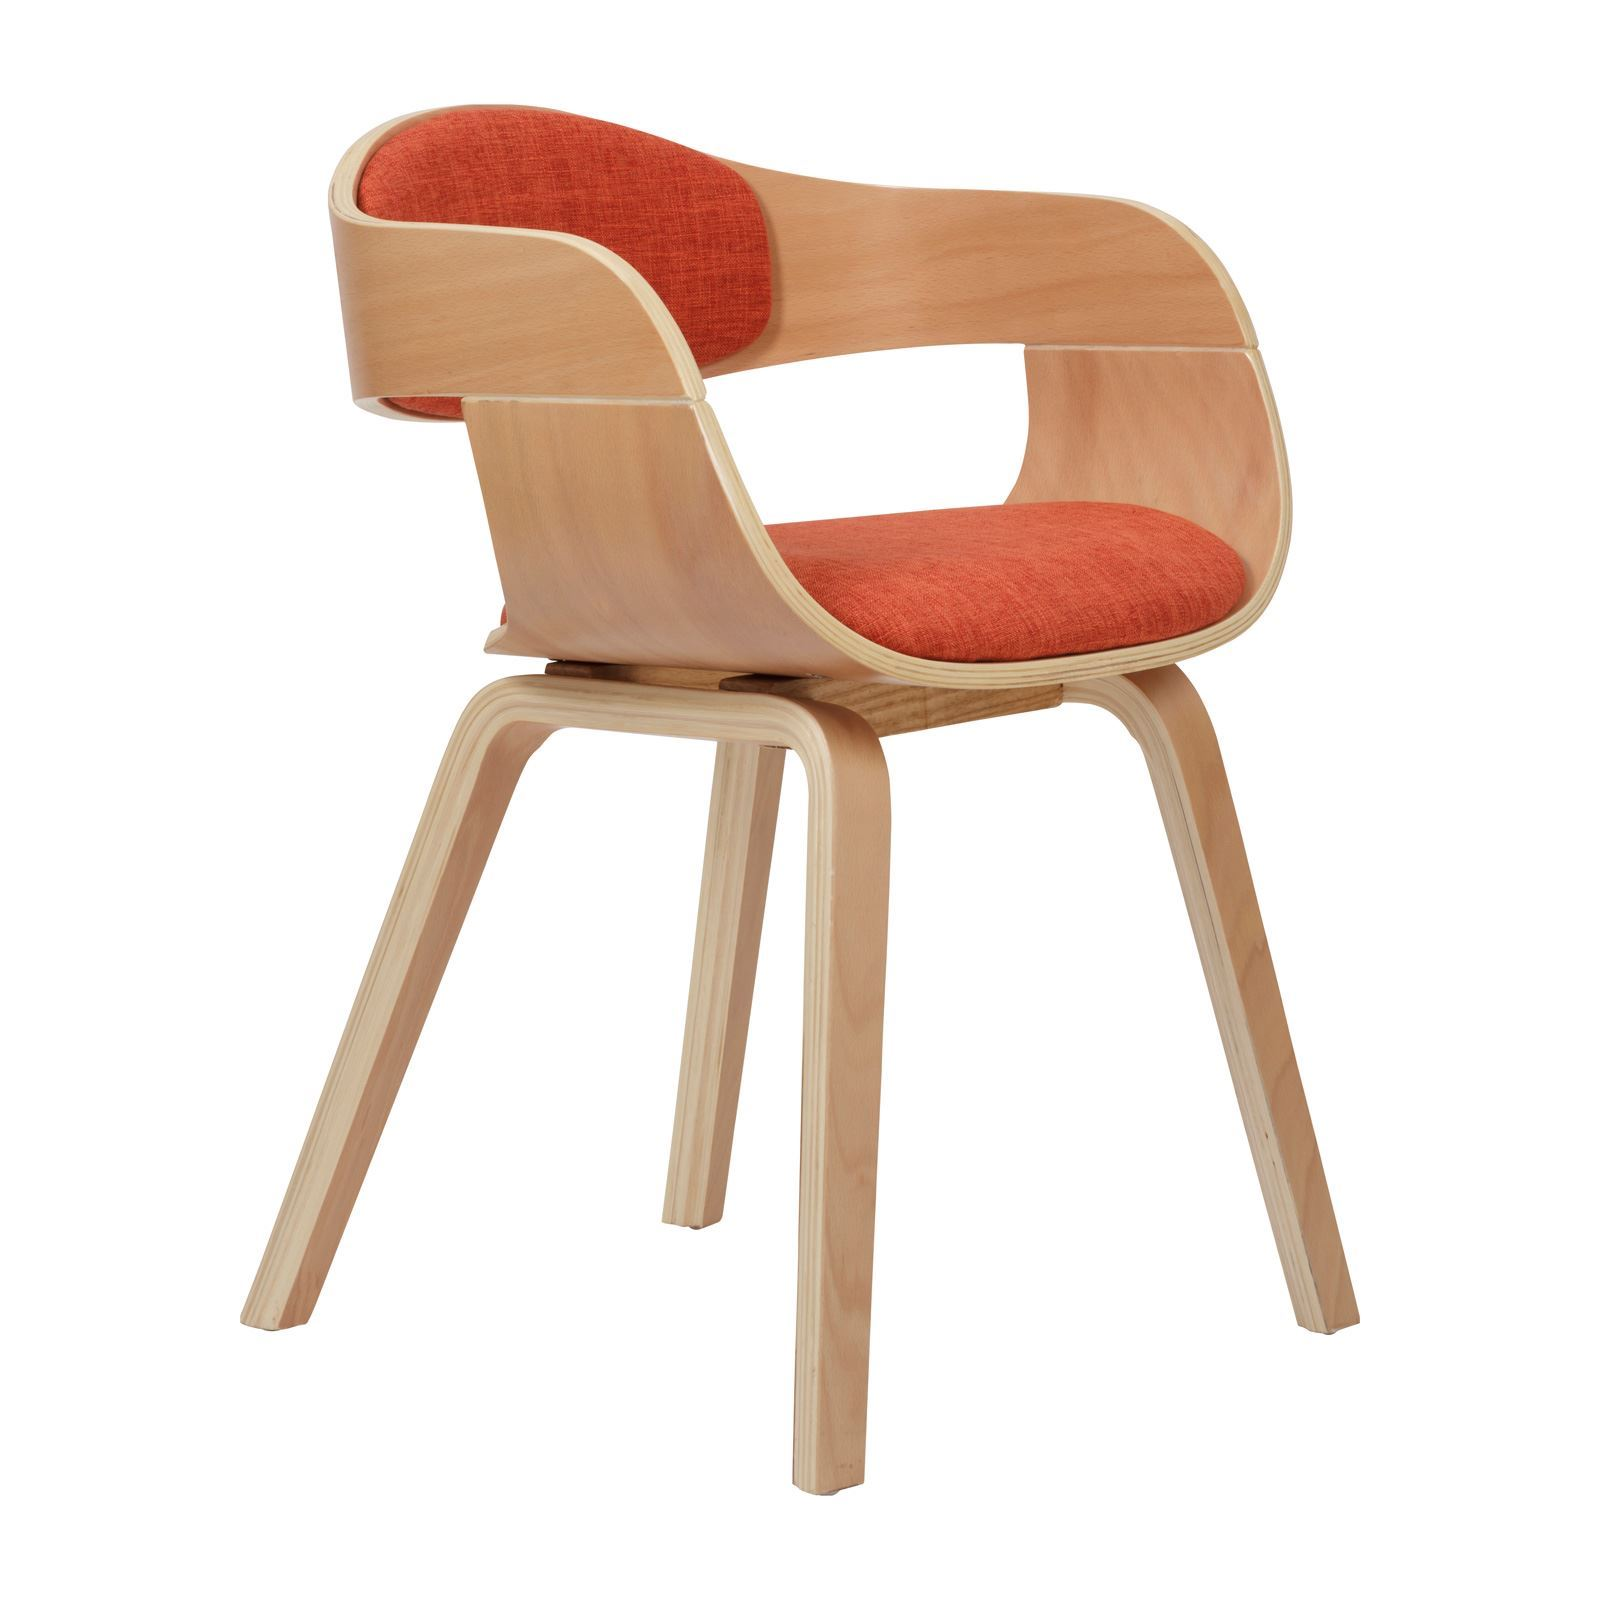 Potiron Fauteuils Potiron Fifties Fauteuil Orange Brandalley